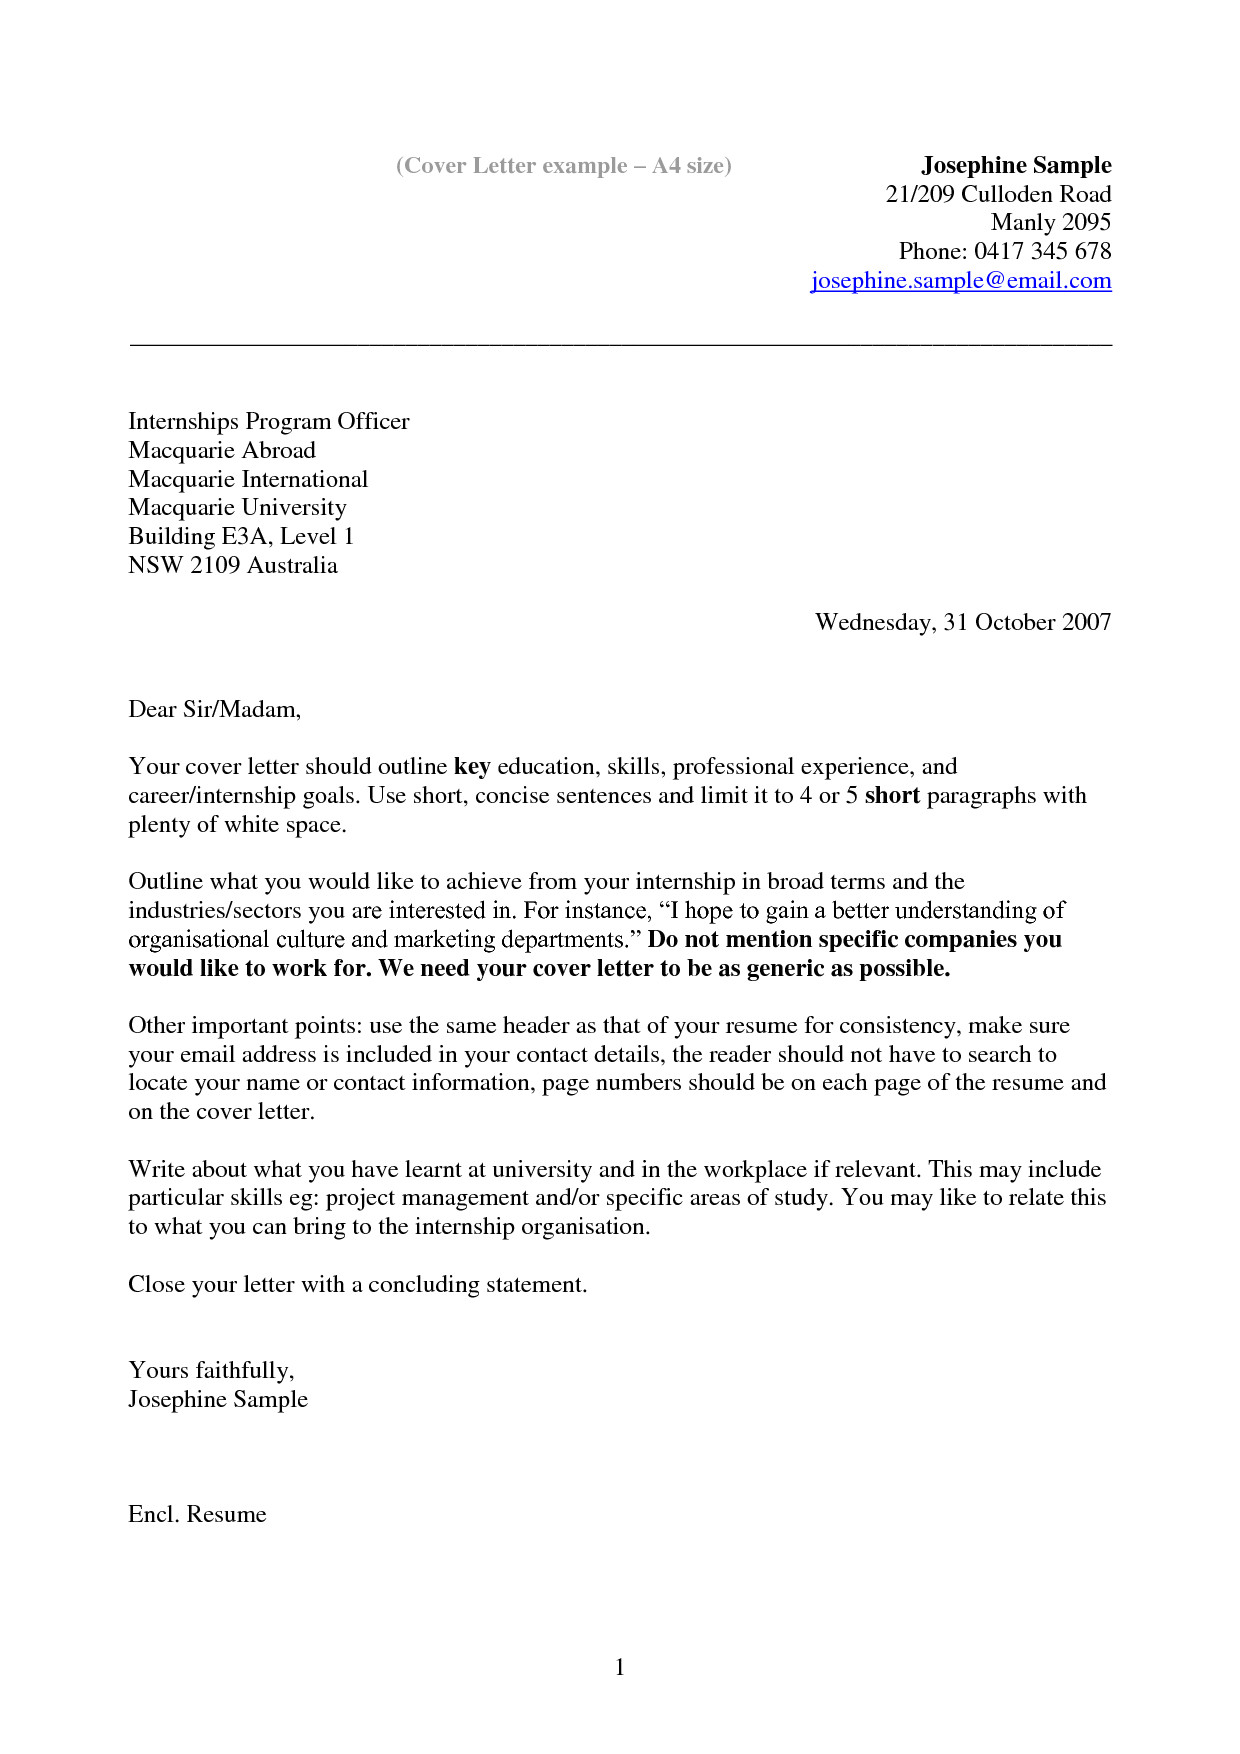 resume cover letter examples 3548